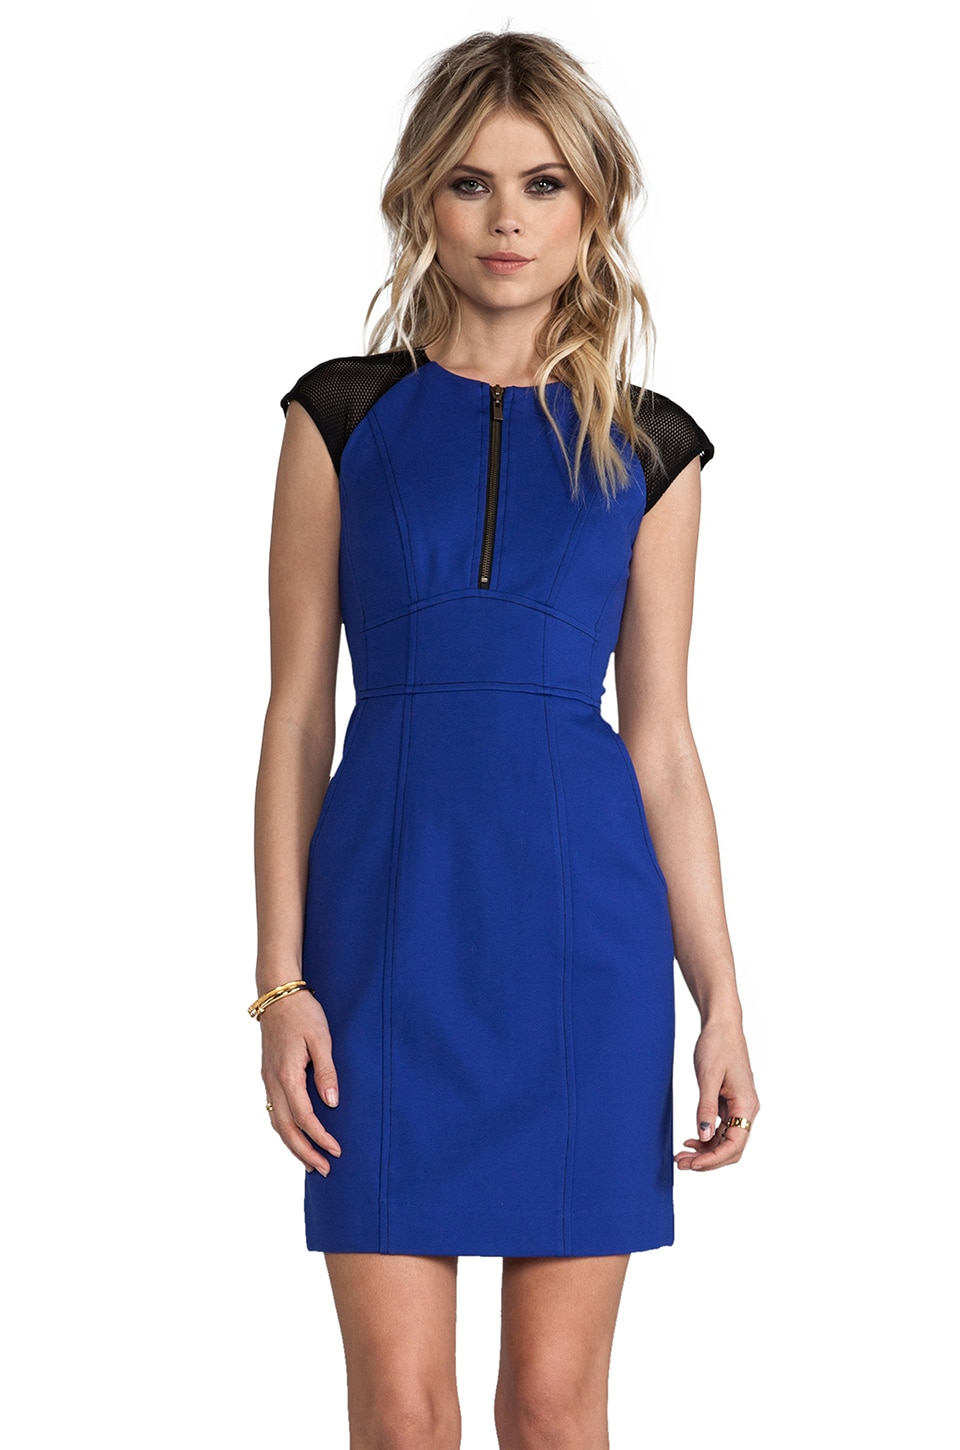 Nanette Lepore Rabat Ponte Tahmira Dress in Marine